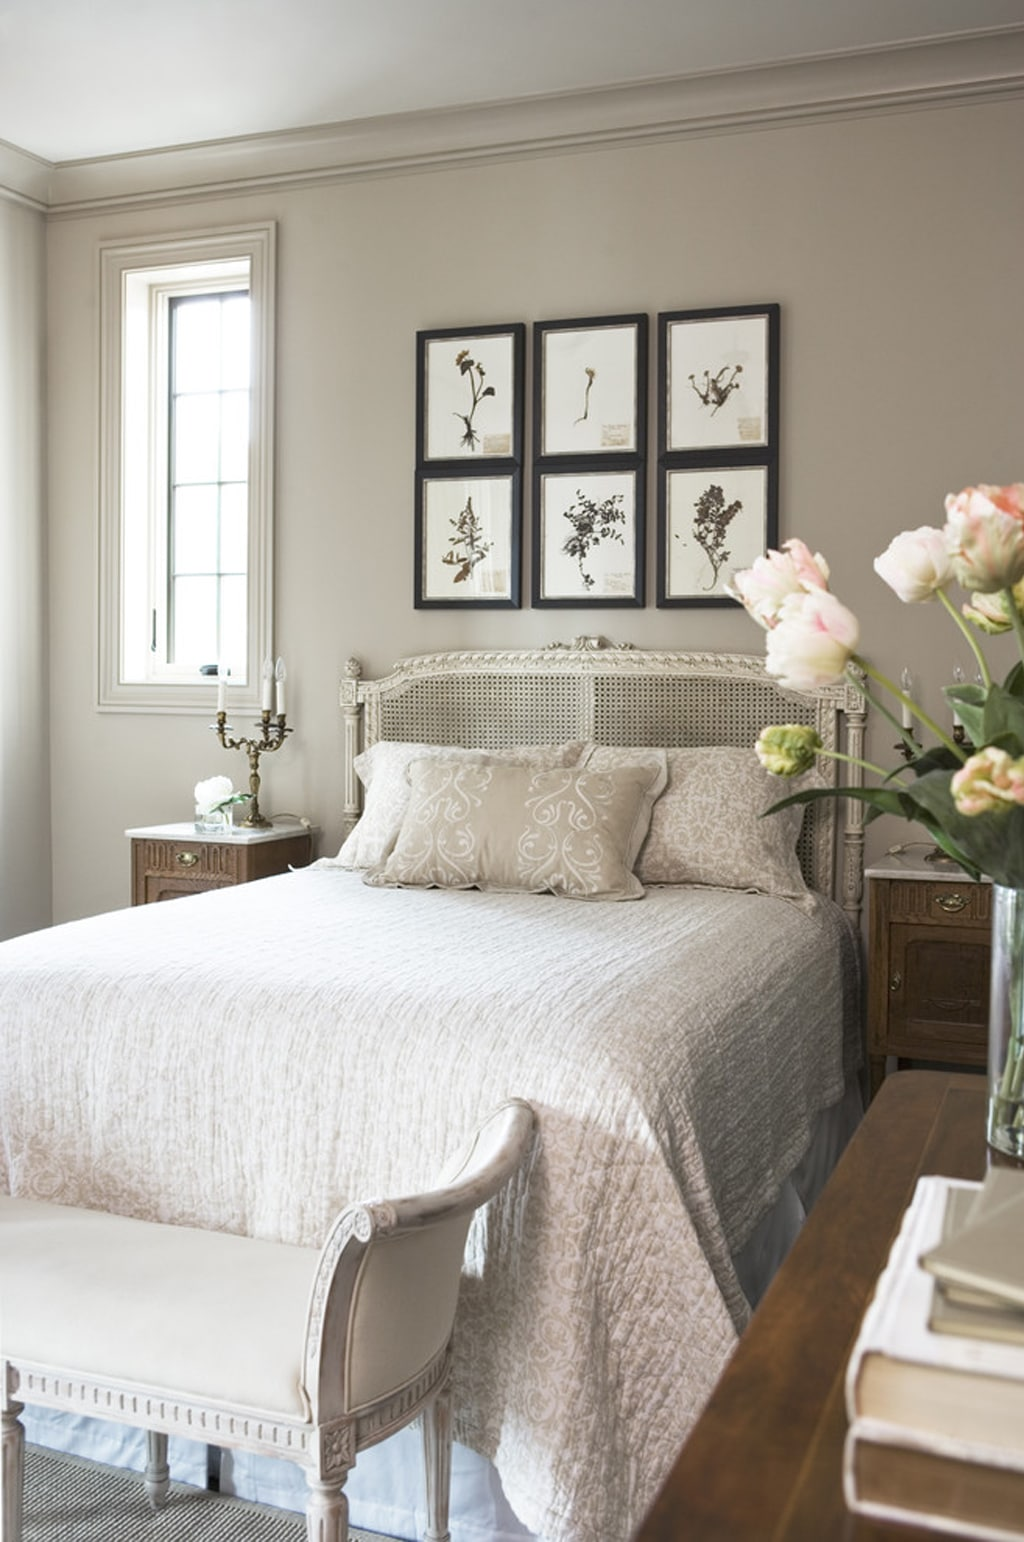 Anew Gray on walls and trim in a bedroom by Lisa McDougald Design. Rachael Boling Photography.